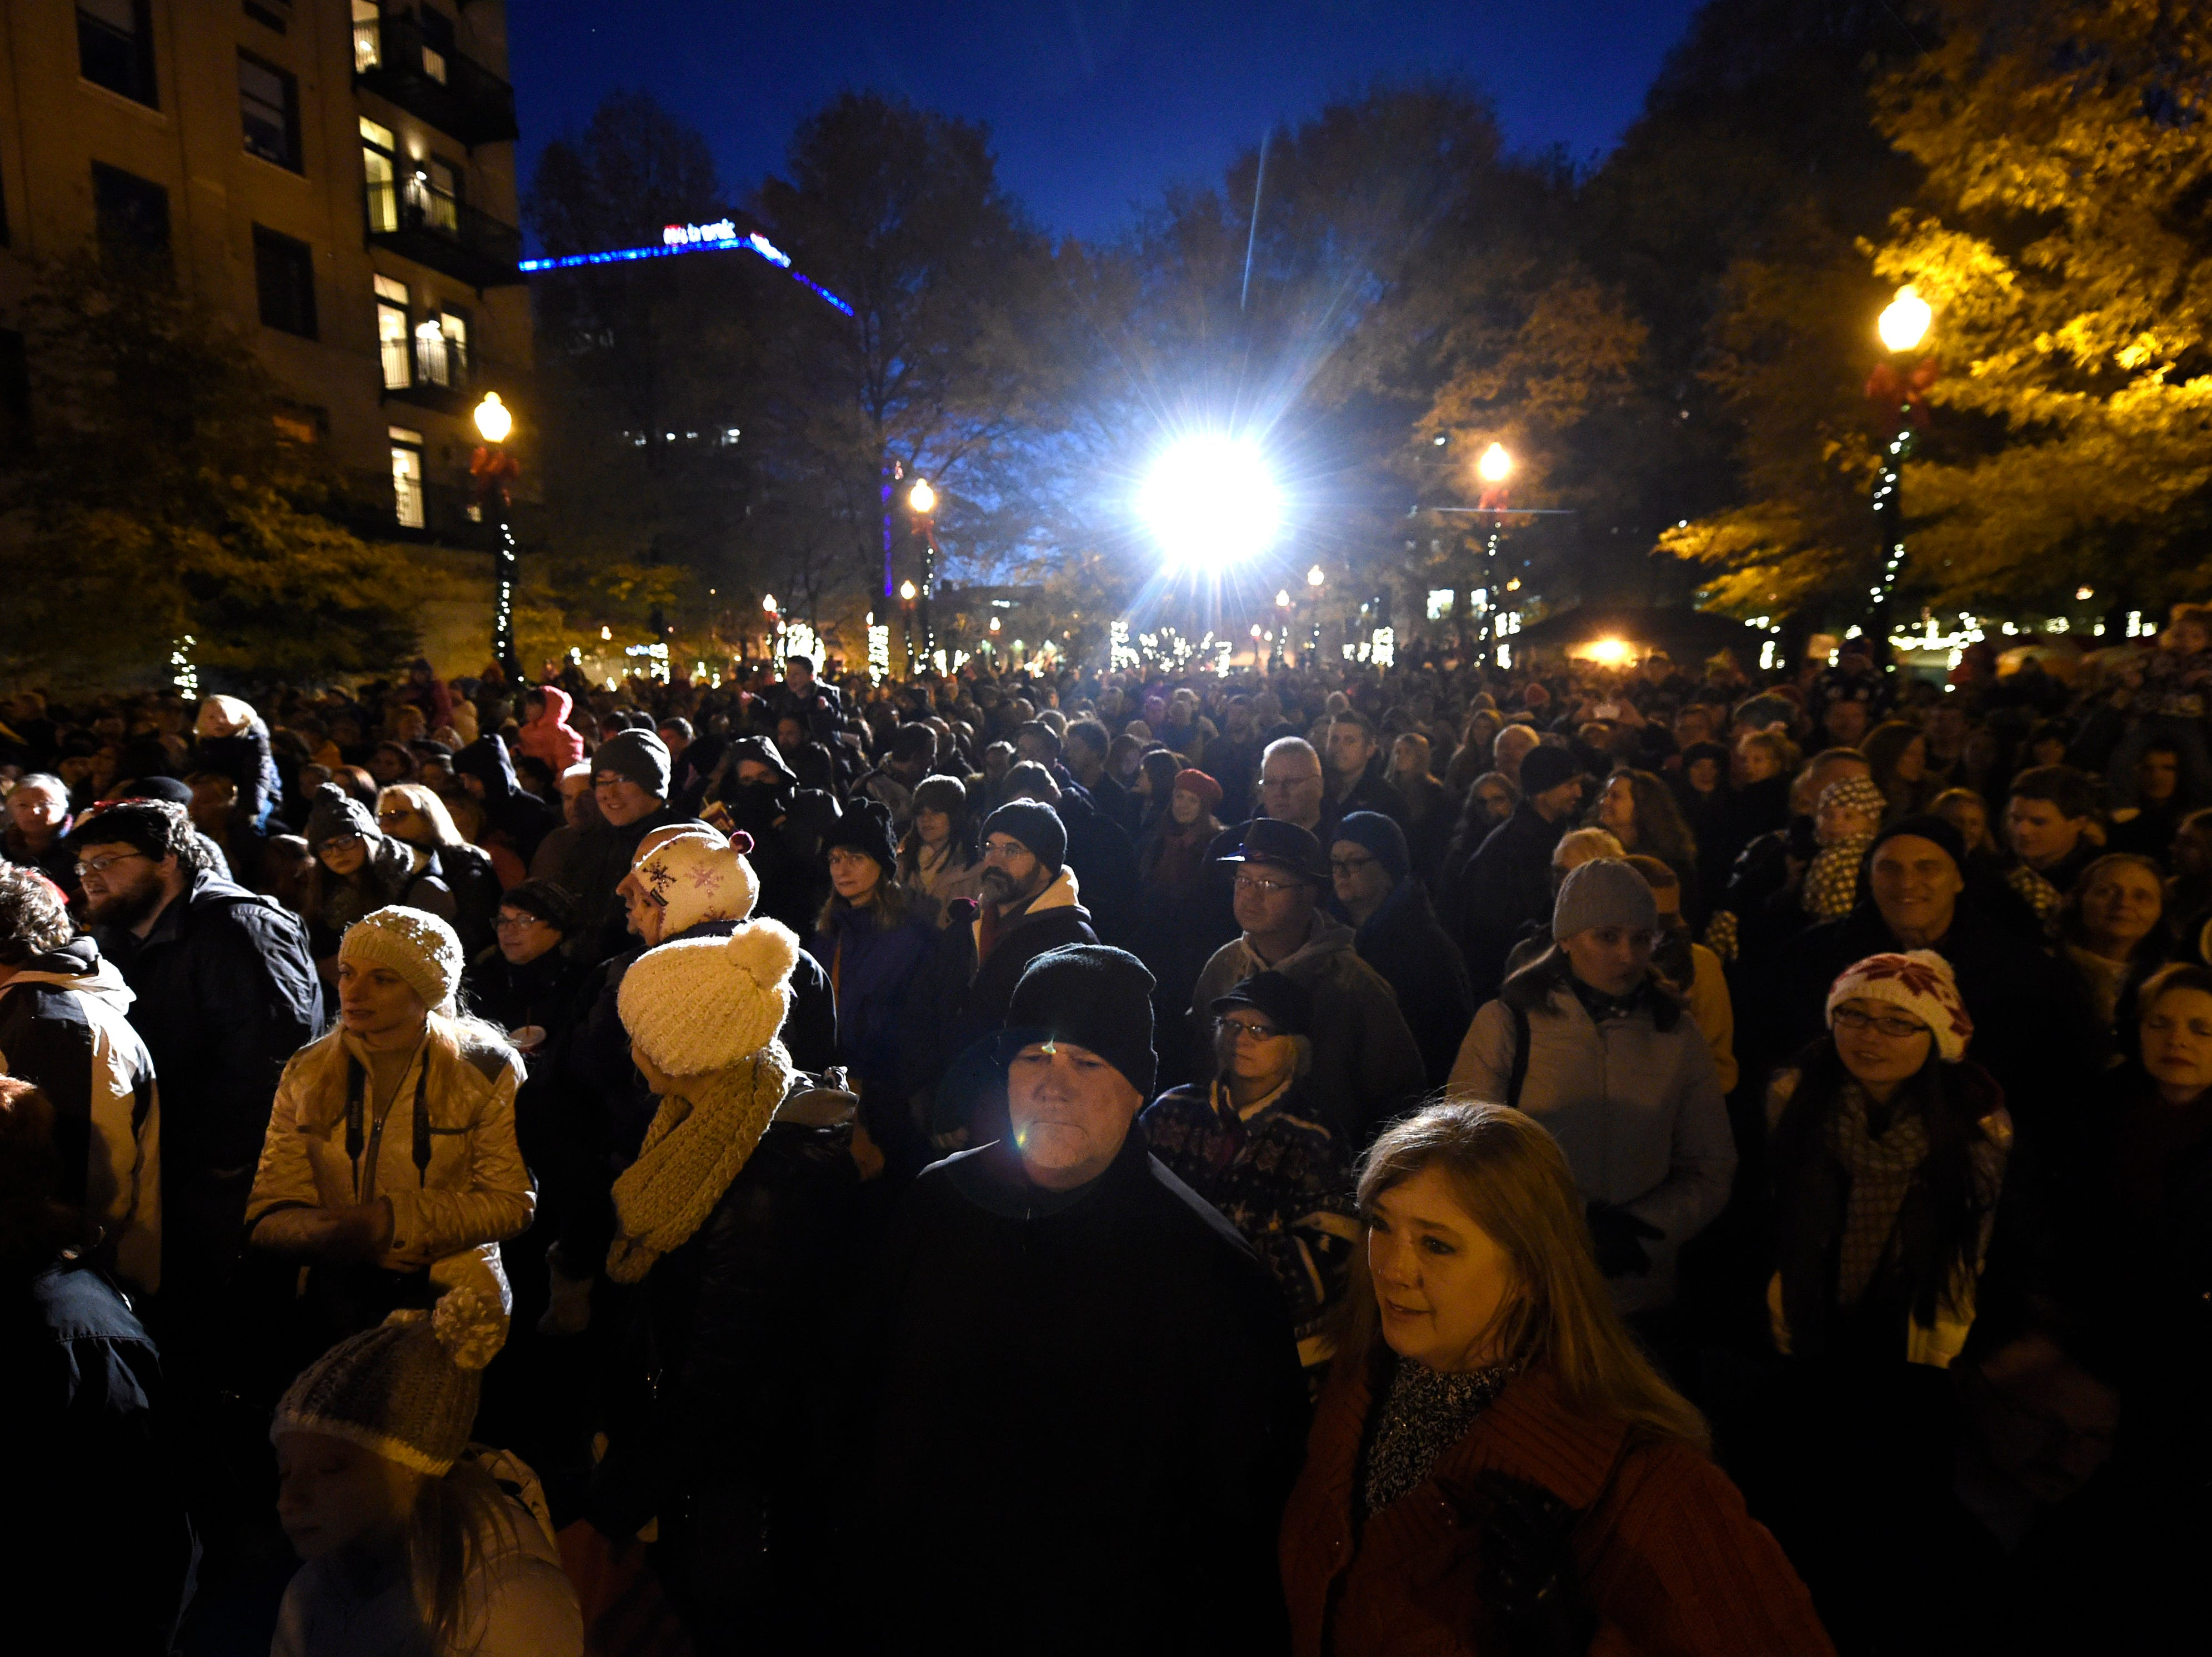 Spectators gather to watch the annual lighting of the Christmas tree in Krutch Park during Christmas in the City festivities in downtown Knoxville on Friday, Nov. 28, 2014.